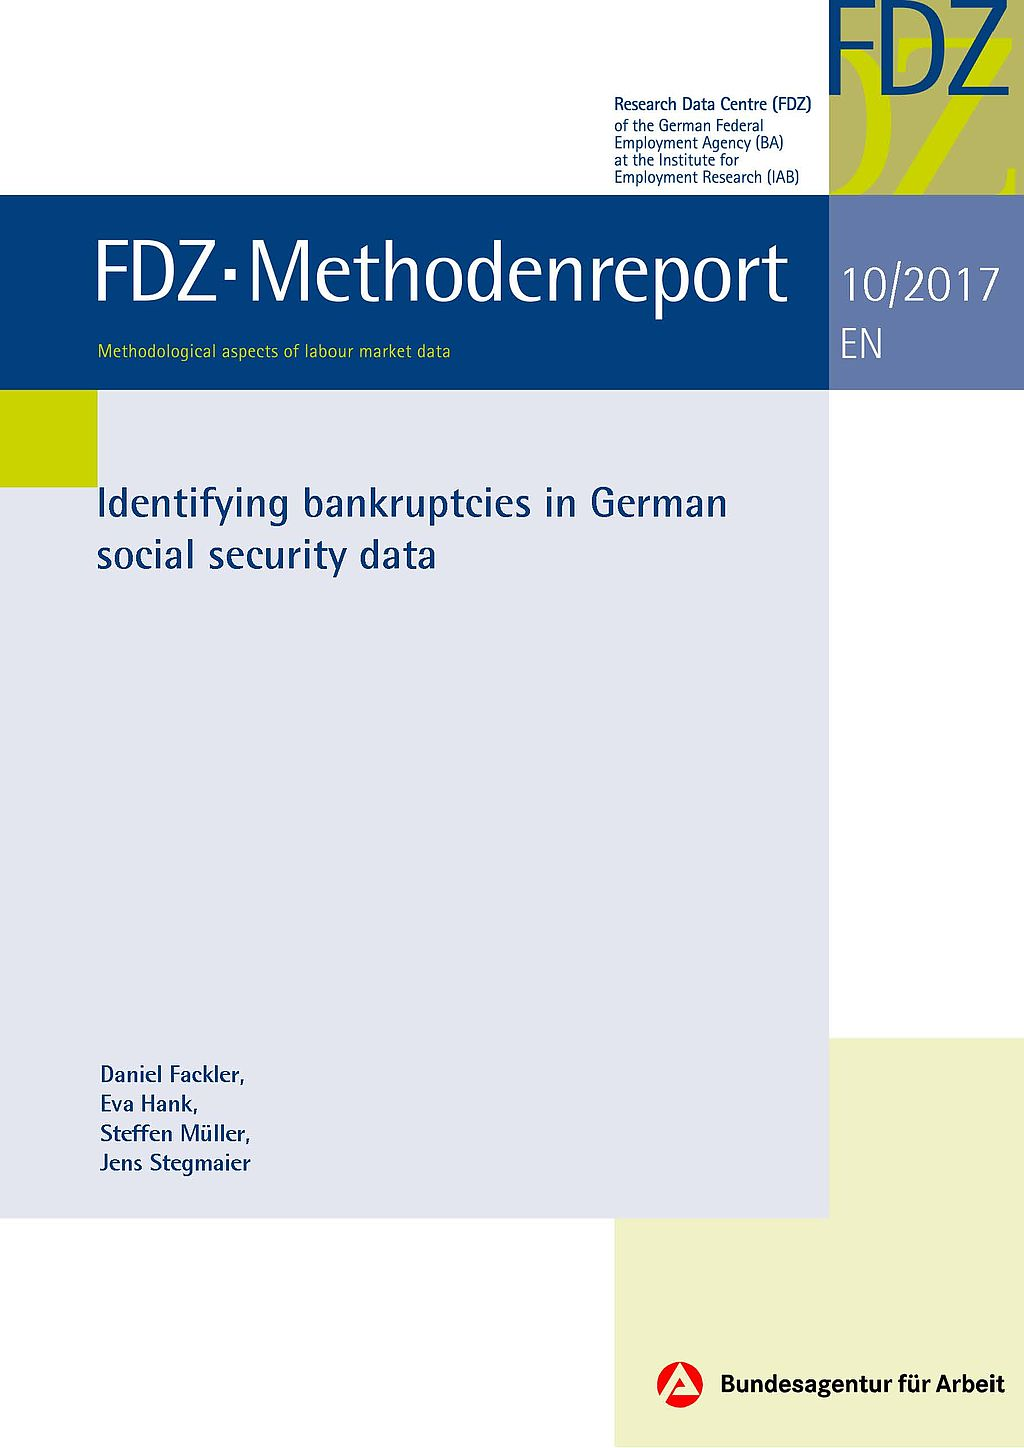 cover_FDZ-Methodenreport_2017-octobe.jpg